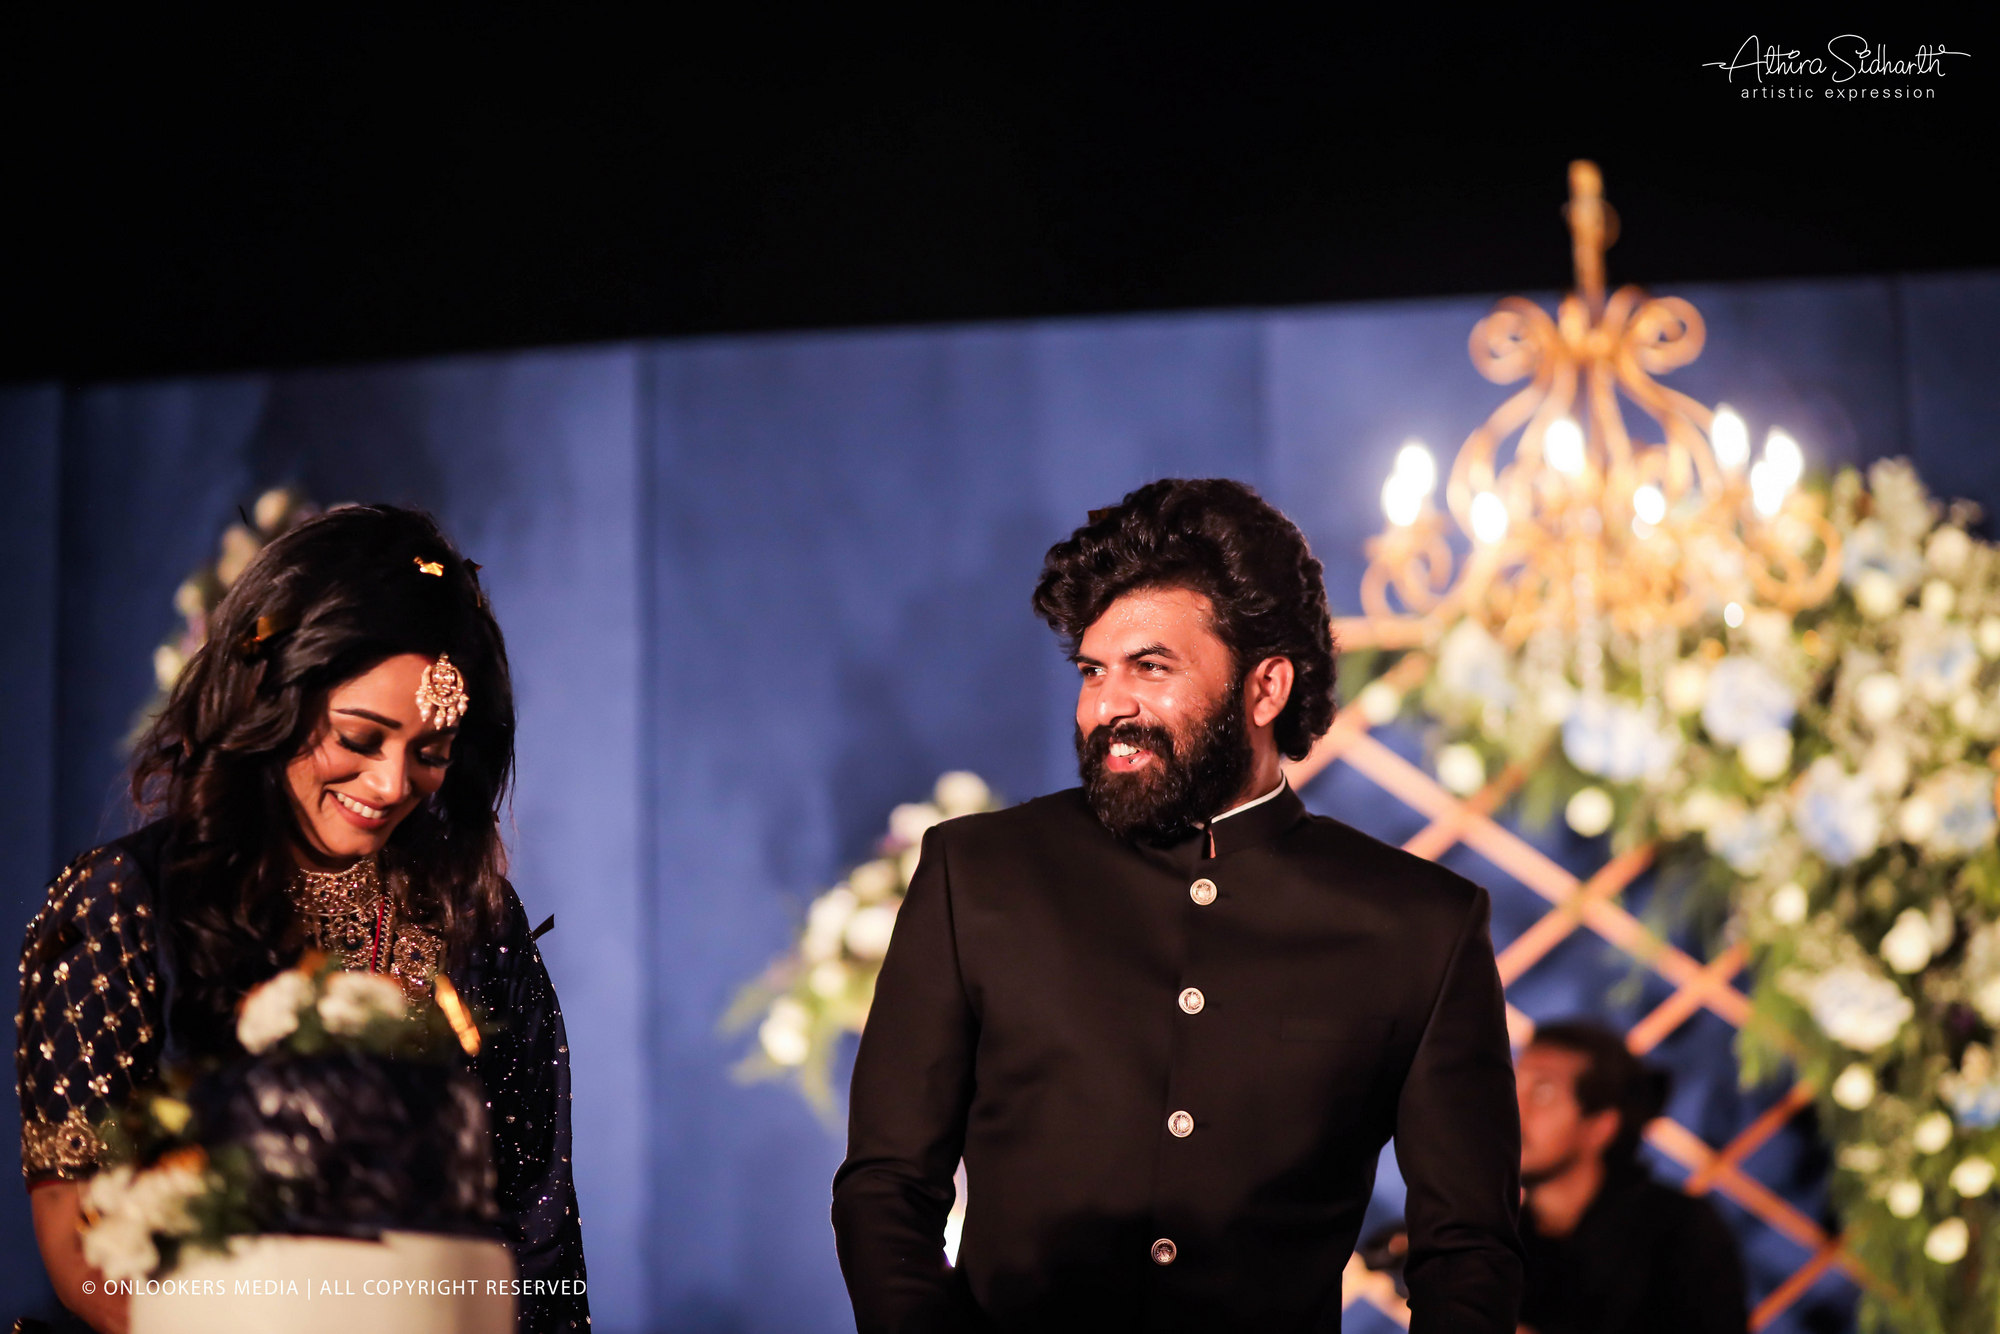 http://onlookersmedia.in/wp-content/uploads/2019/04/sunny-Wayne-wedding-reception-photos-stills-images-38.jpg